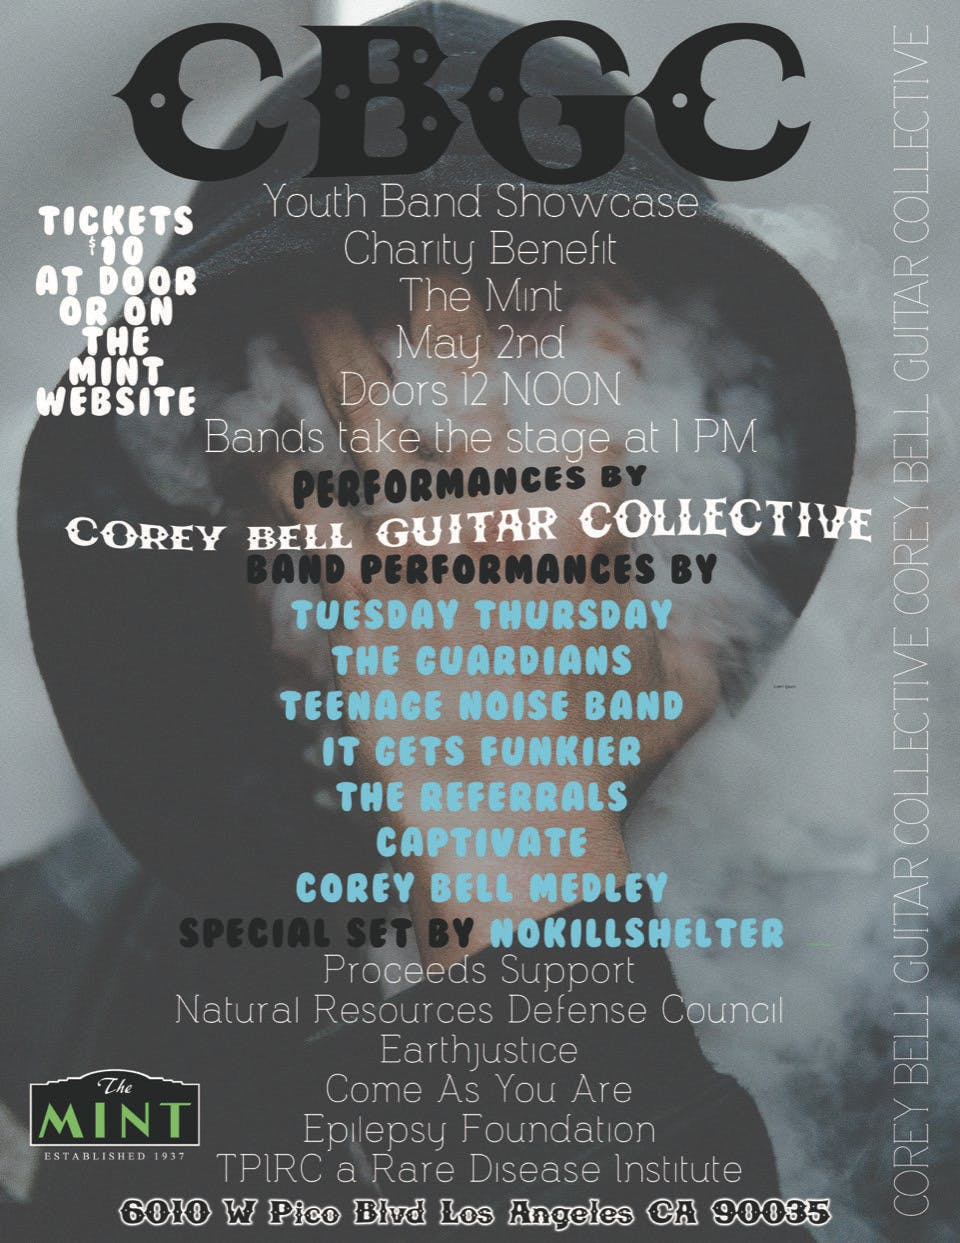 CBGC Youth Band Showcase